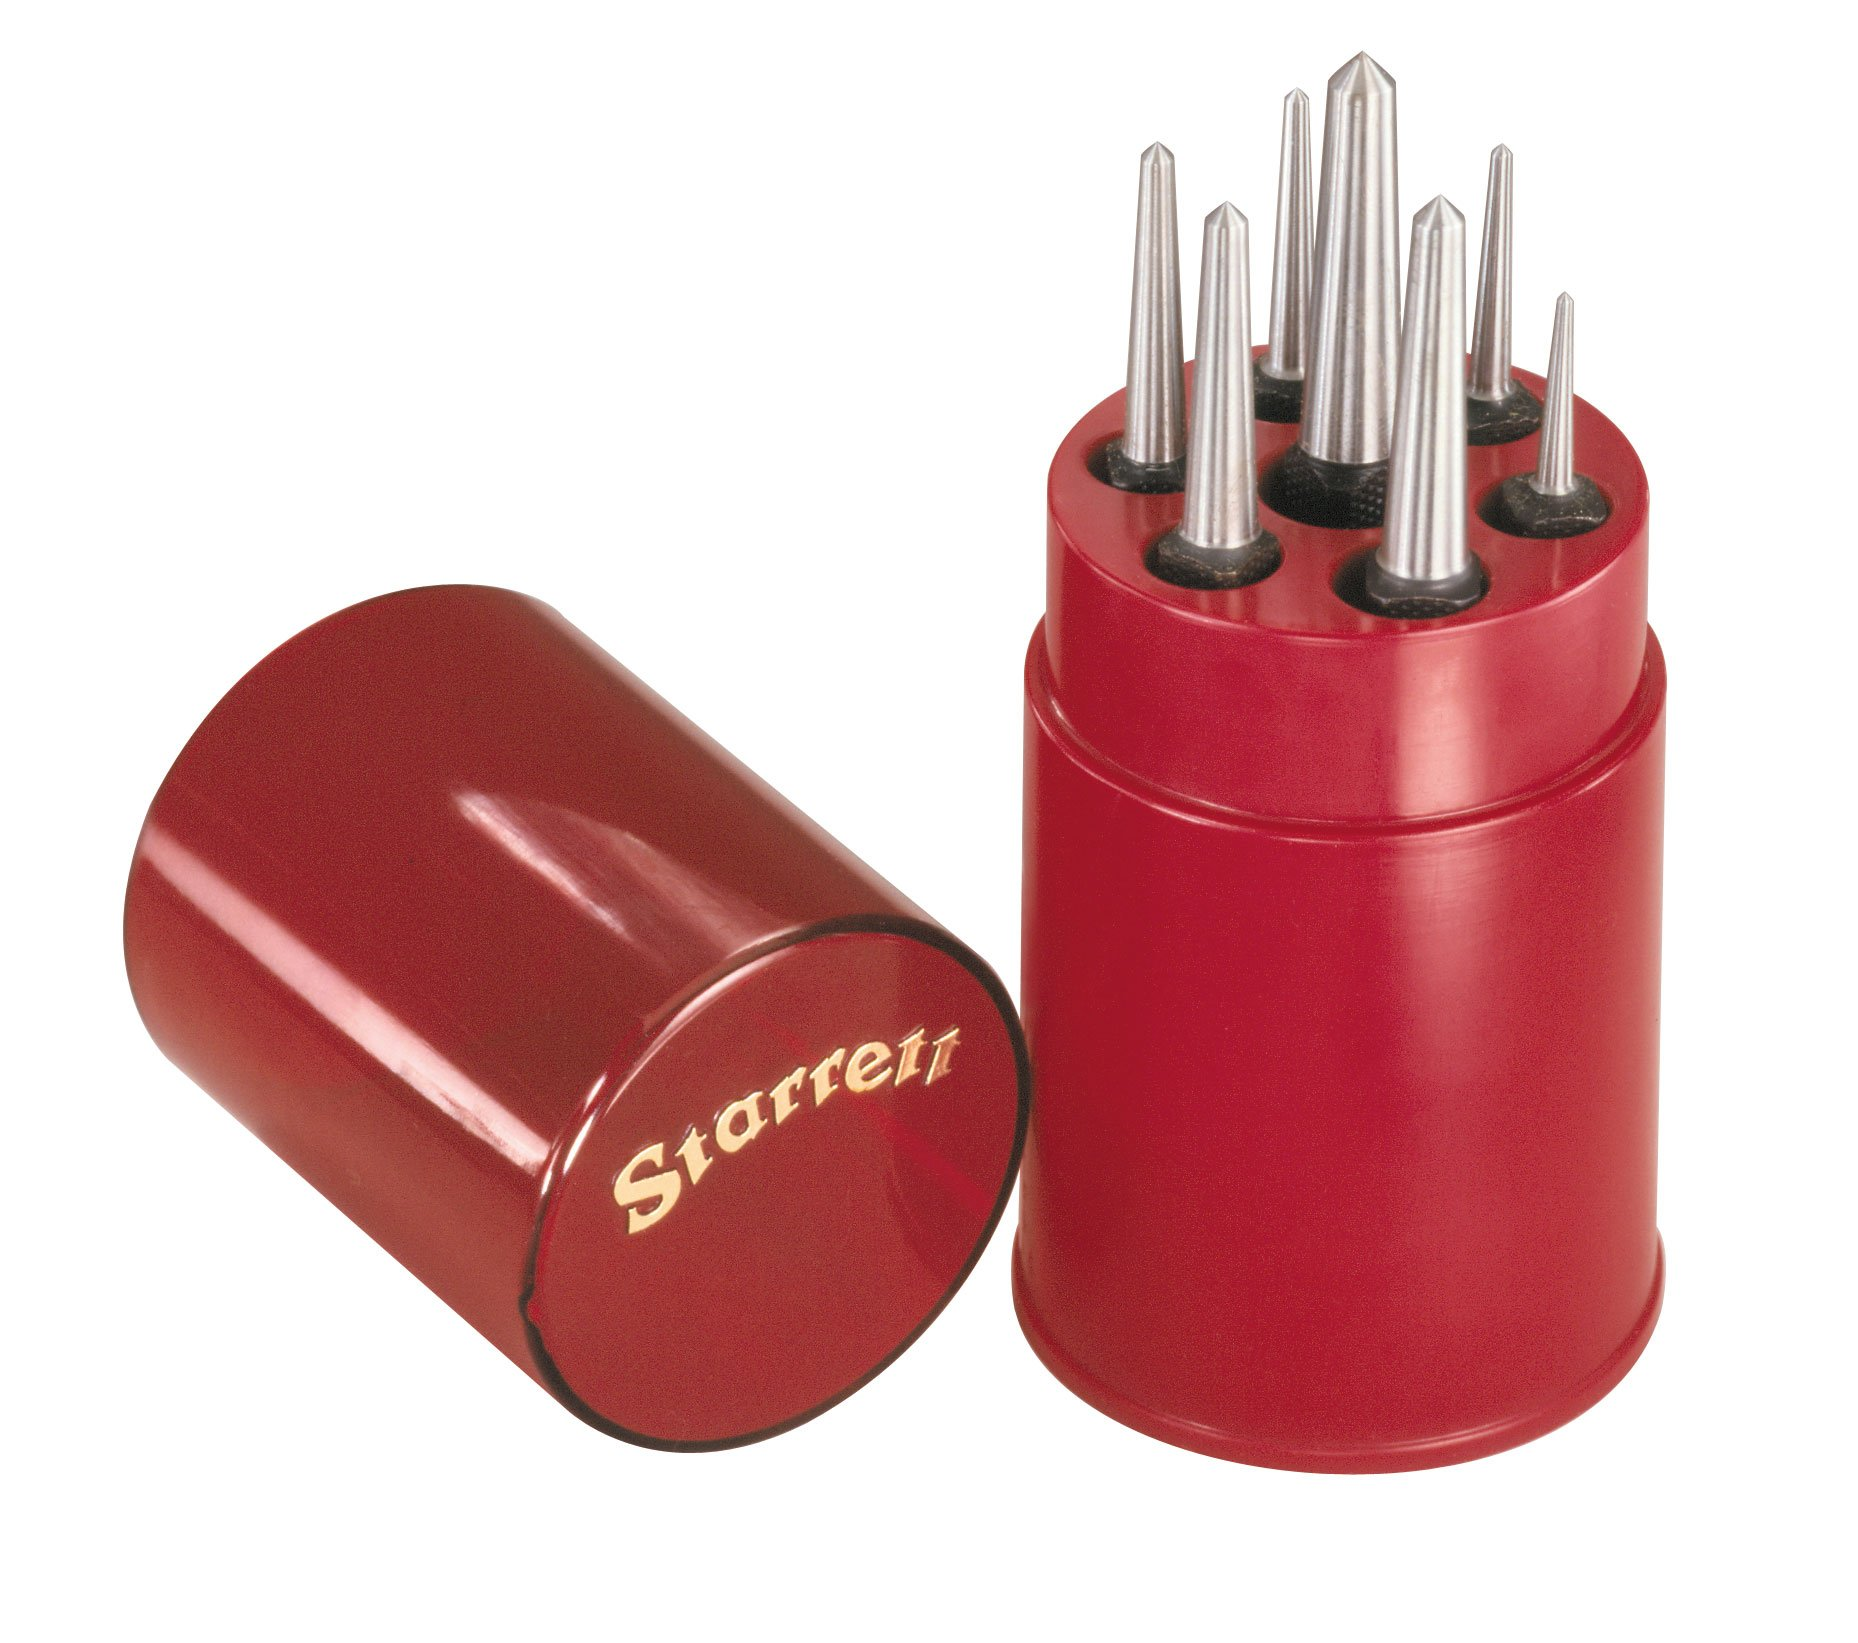 Starrett S264WB Set of 7 Center Punches in Round Plastic Box